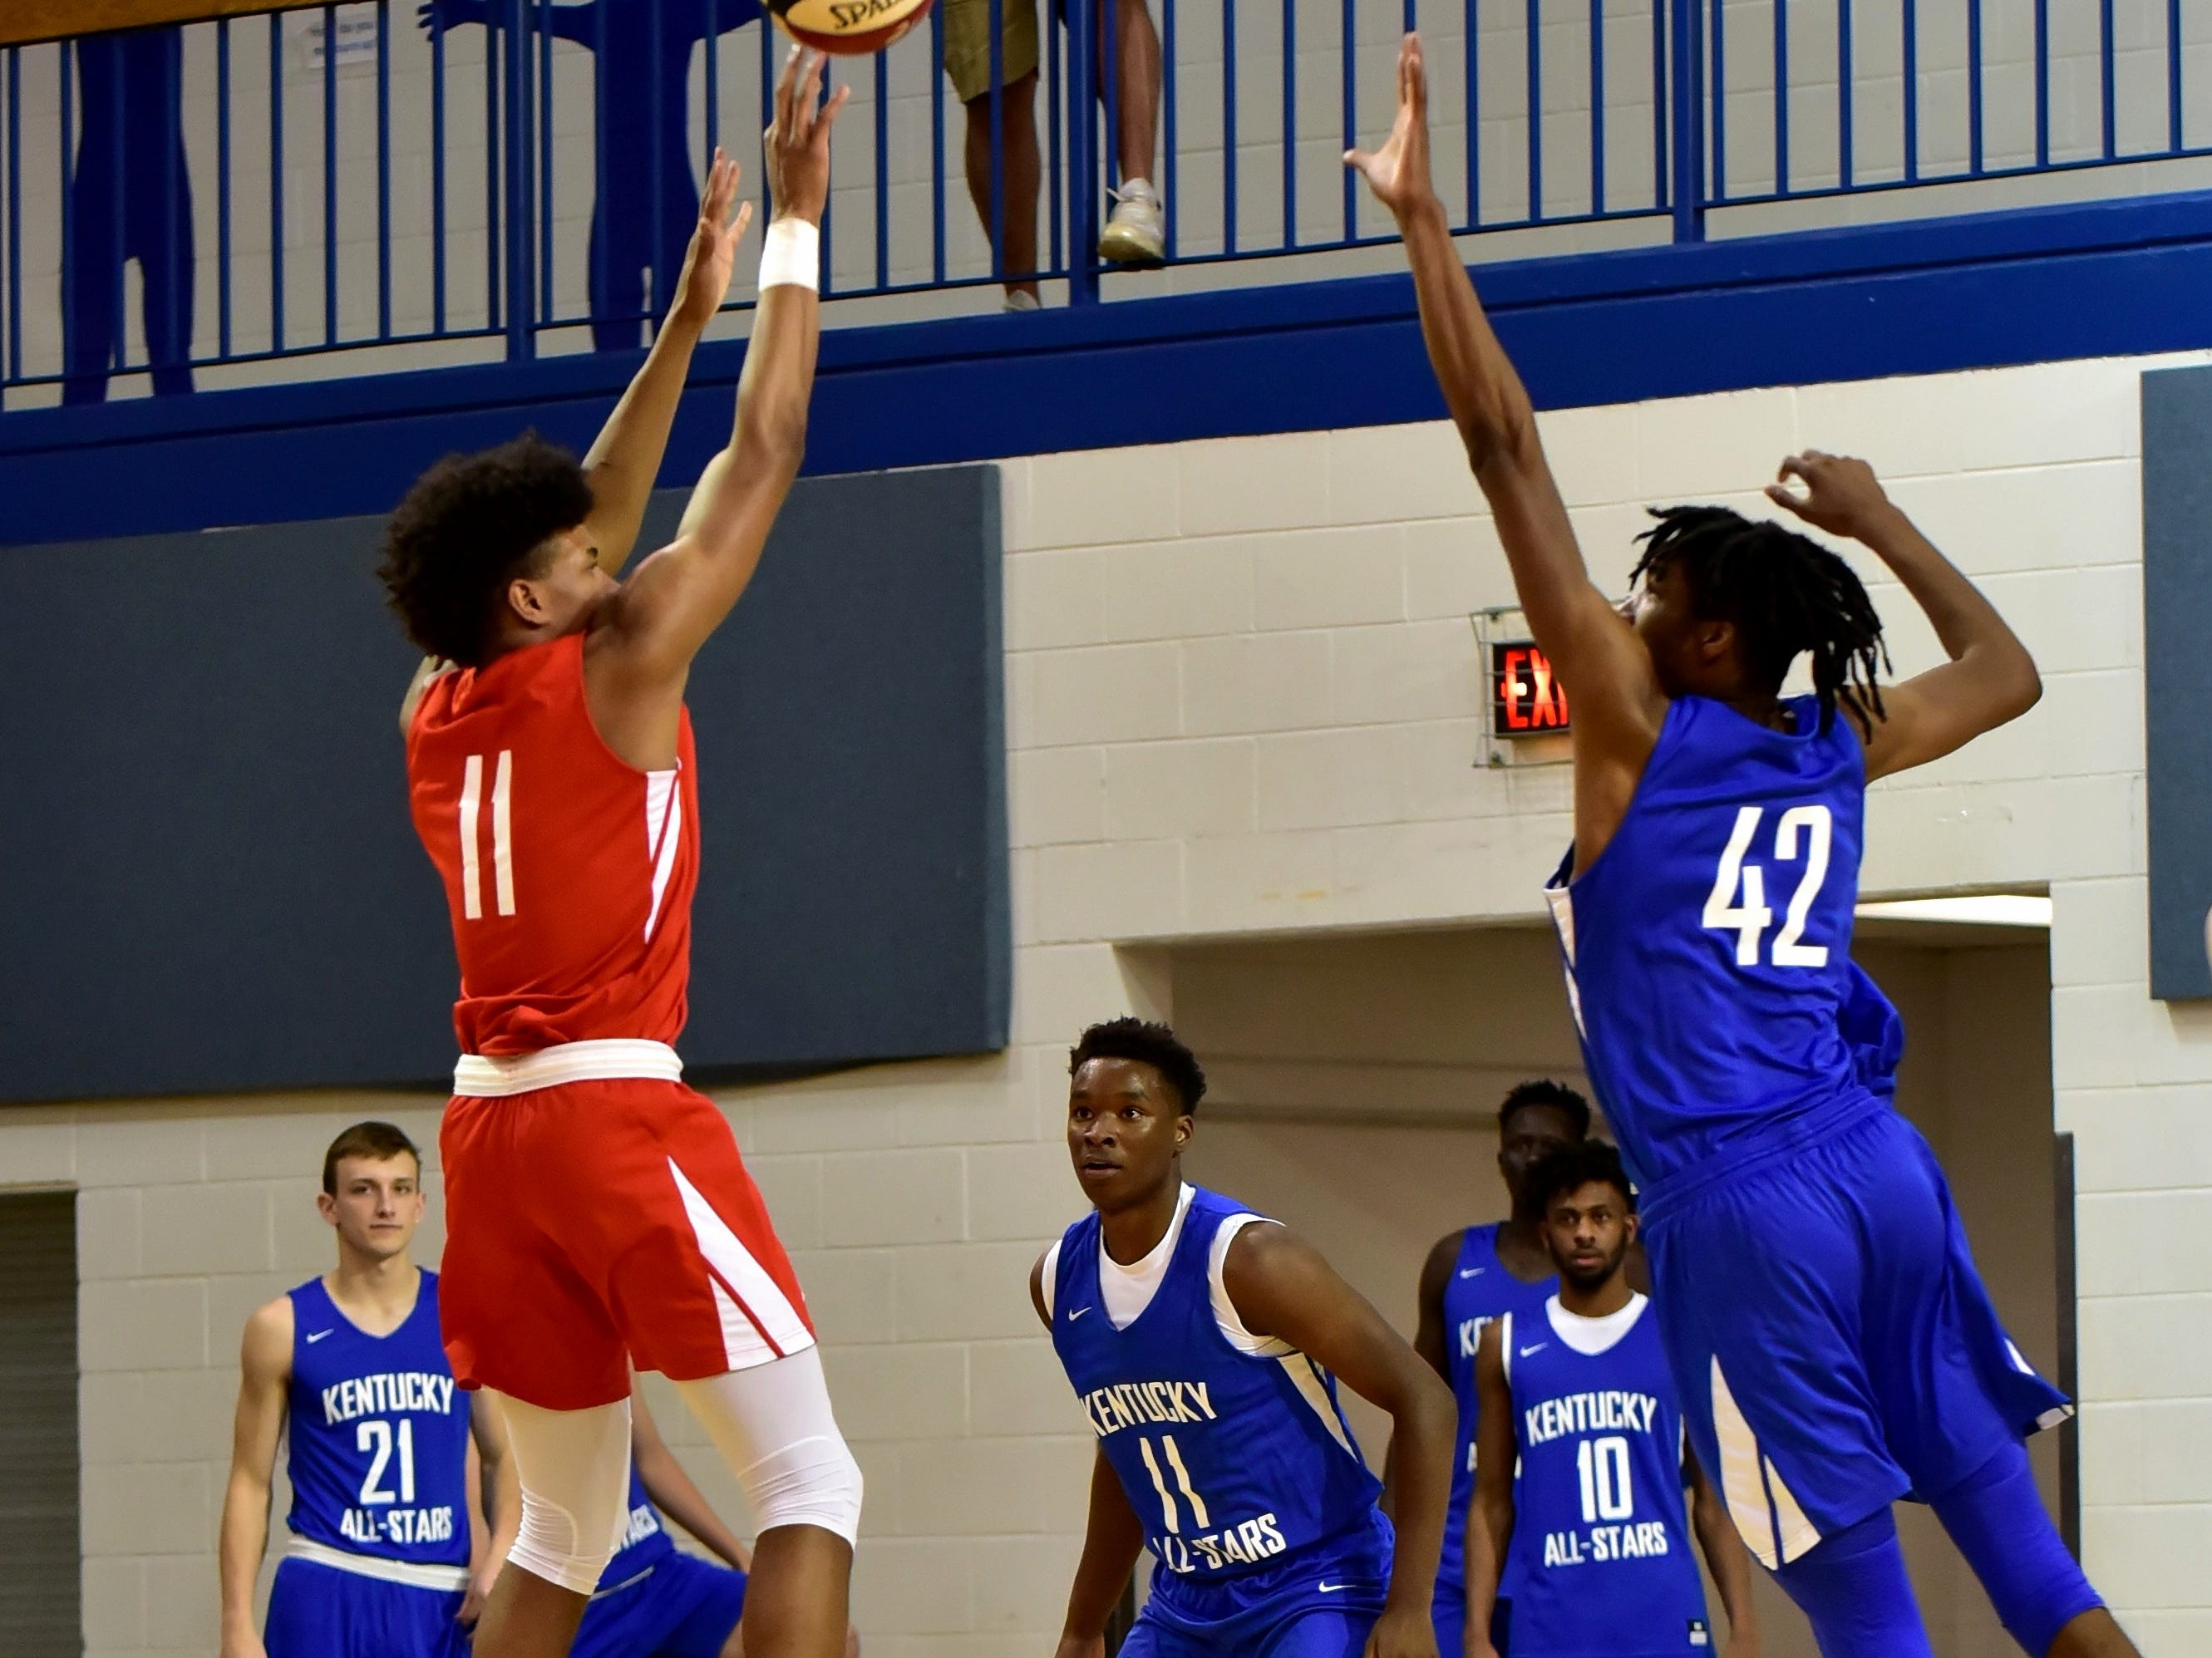 Miles McBride (11) of Moeller fires home a jump shot for the Ohio boys team as Dieonte Miles of Walton-Verona offers defense for the Kentucky boys team at the 28th Annual Ohio-Kentucky All Star Games played at Thomas More University, April 13, 2019